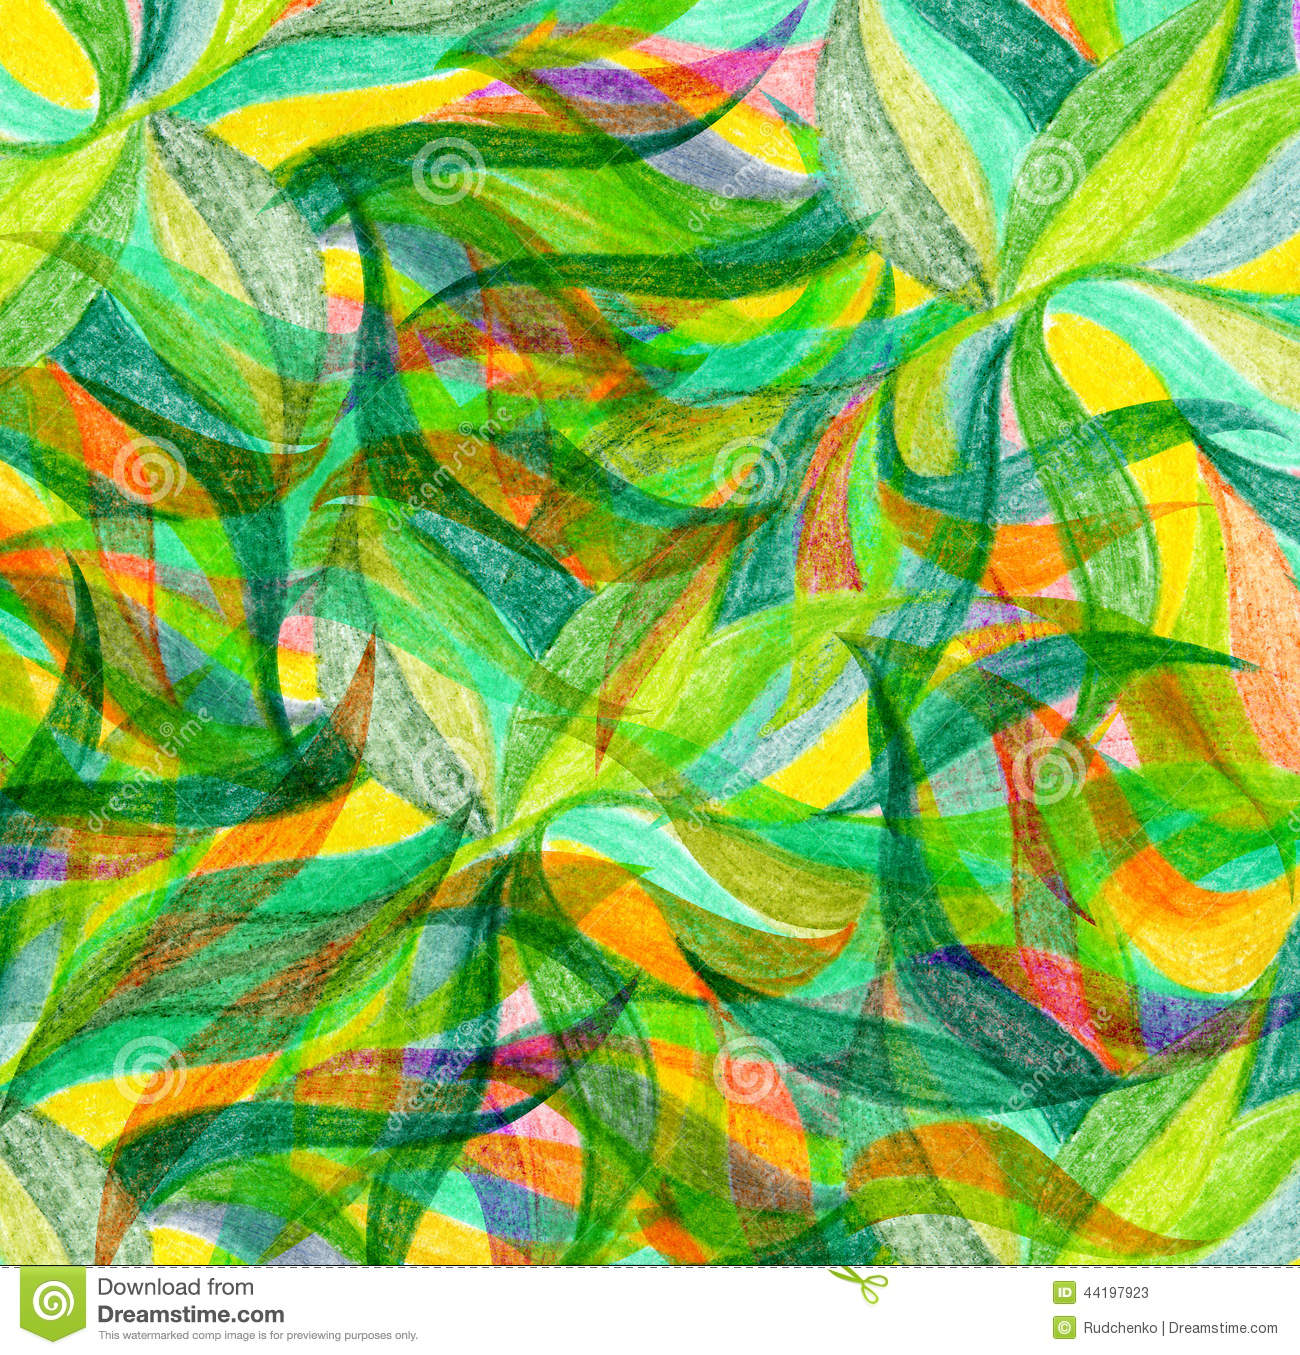 Abstract Color Pencil Draw Background Stock Image - Image of ...